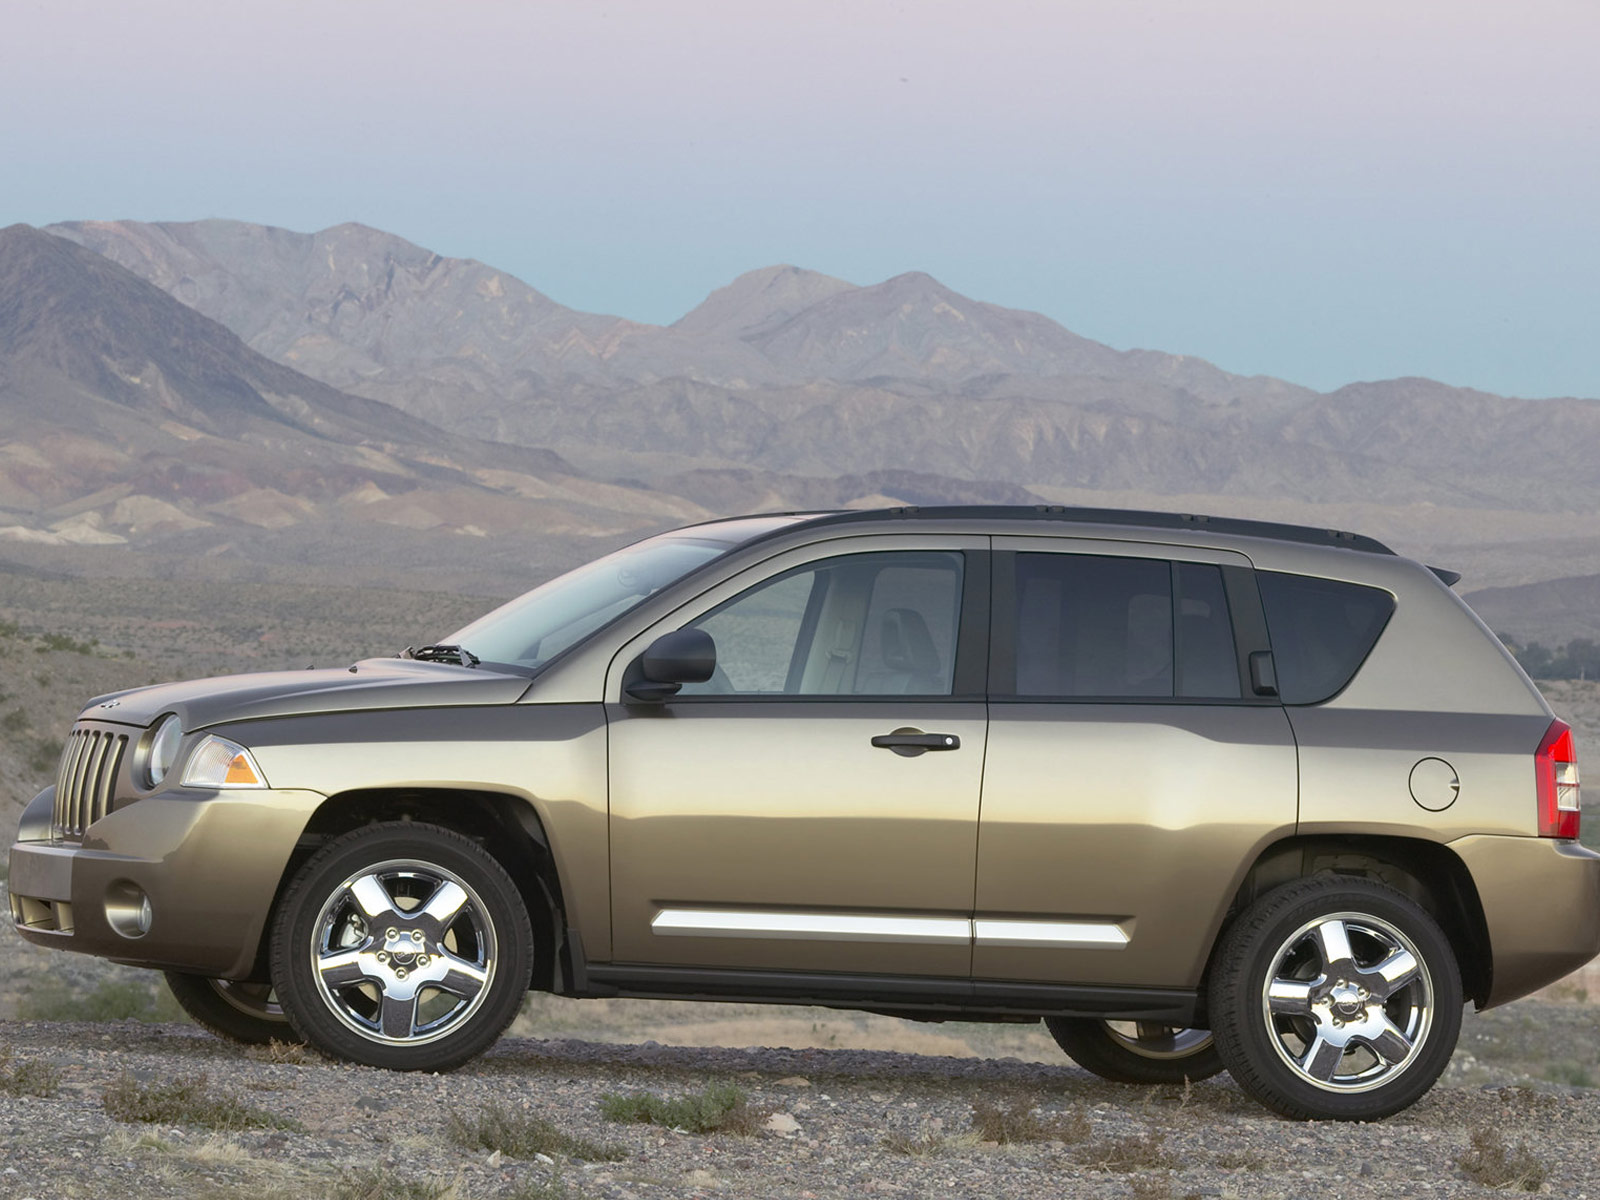 2007 jeep compass jeep pictures. Black Bedroom Furniture Sets. Home Design Ideas